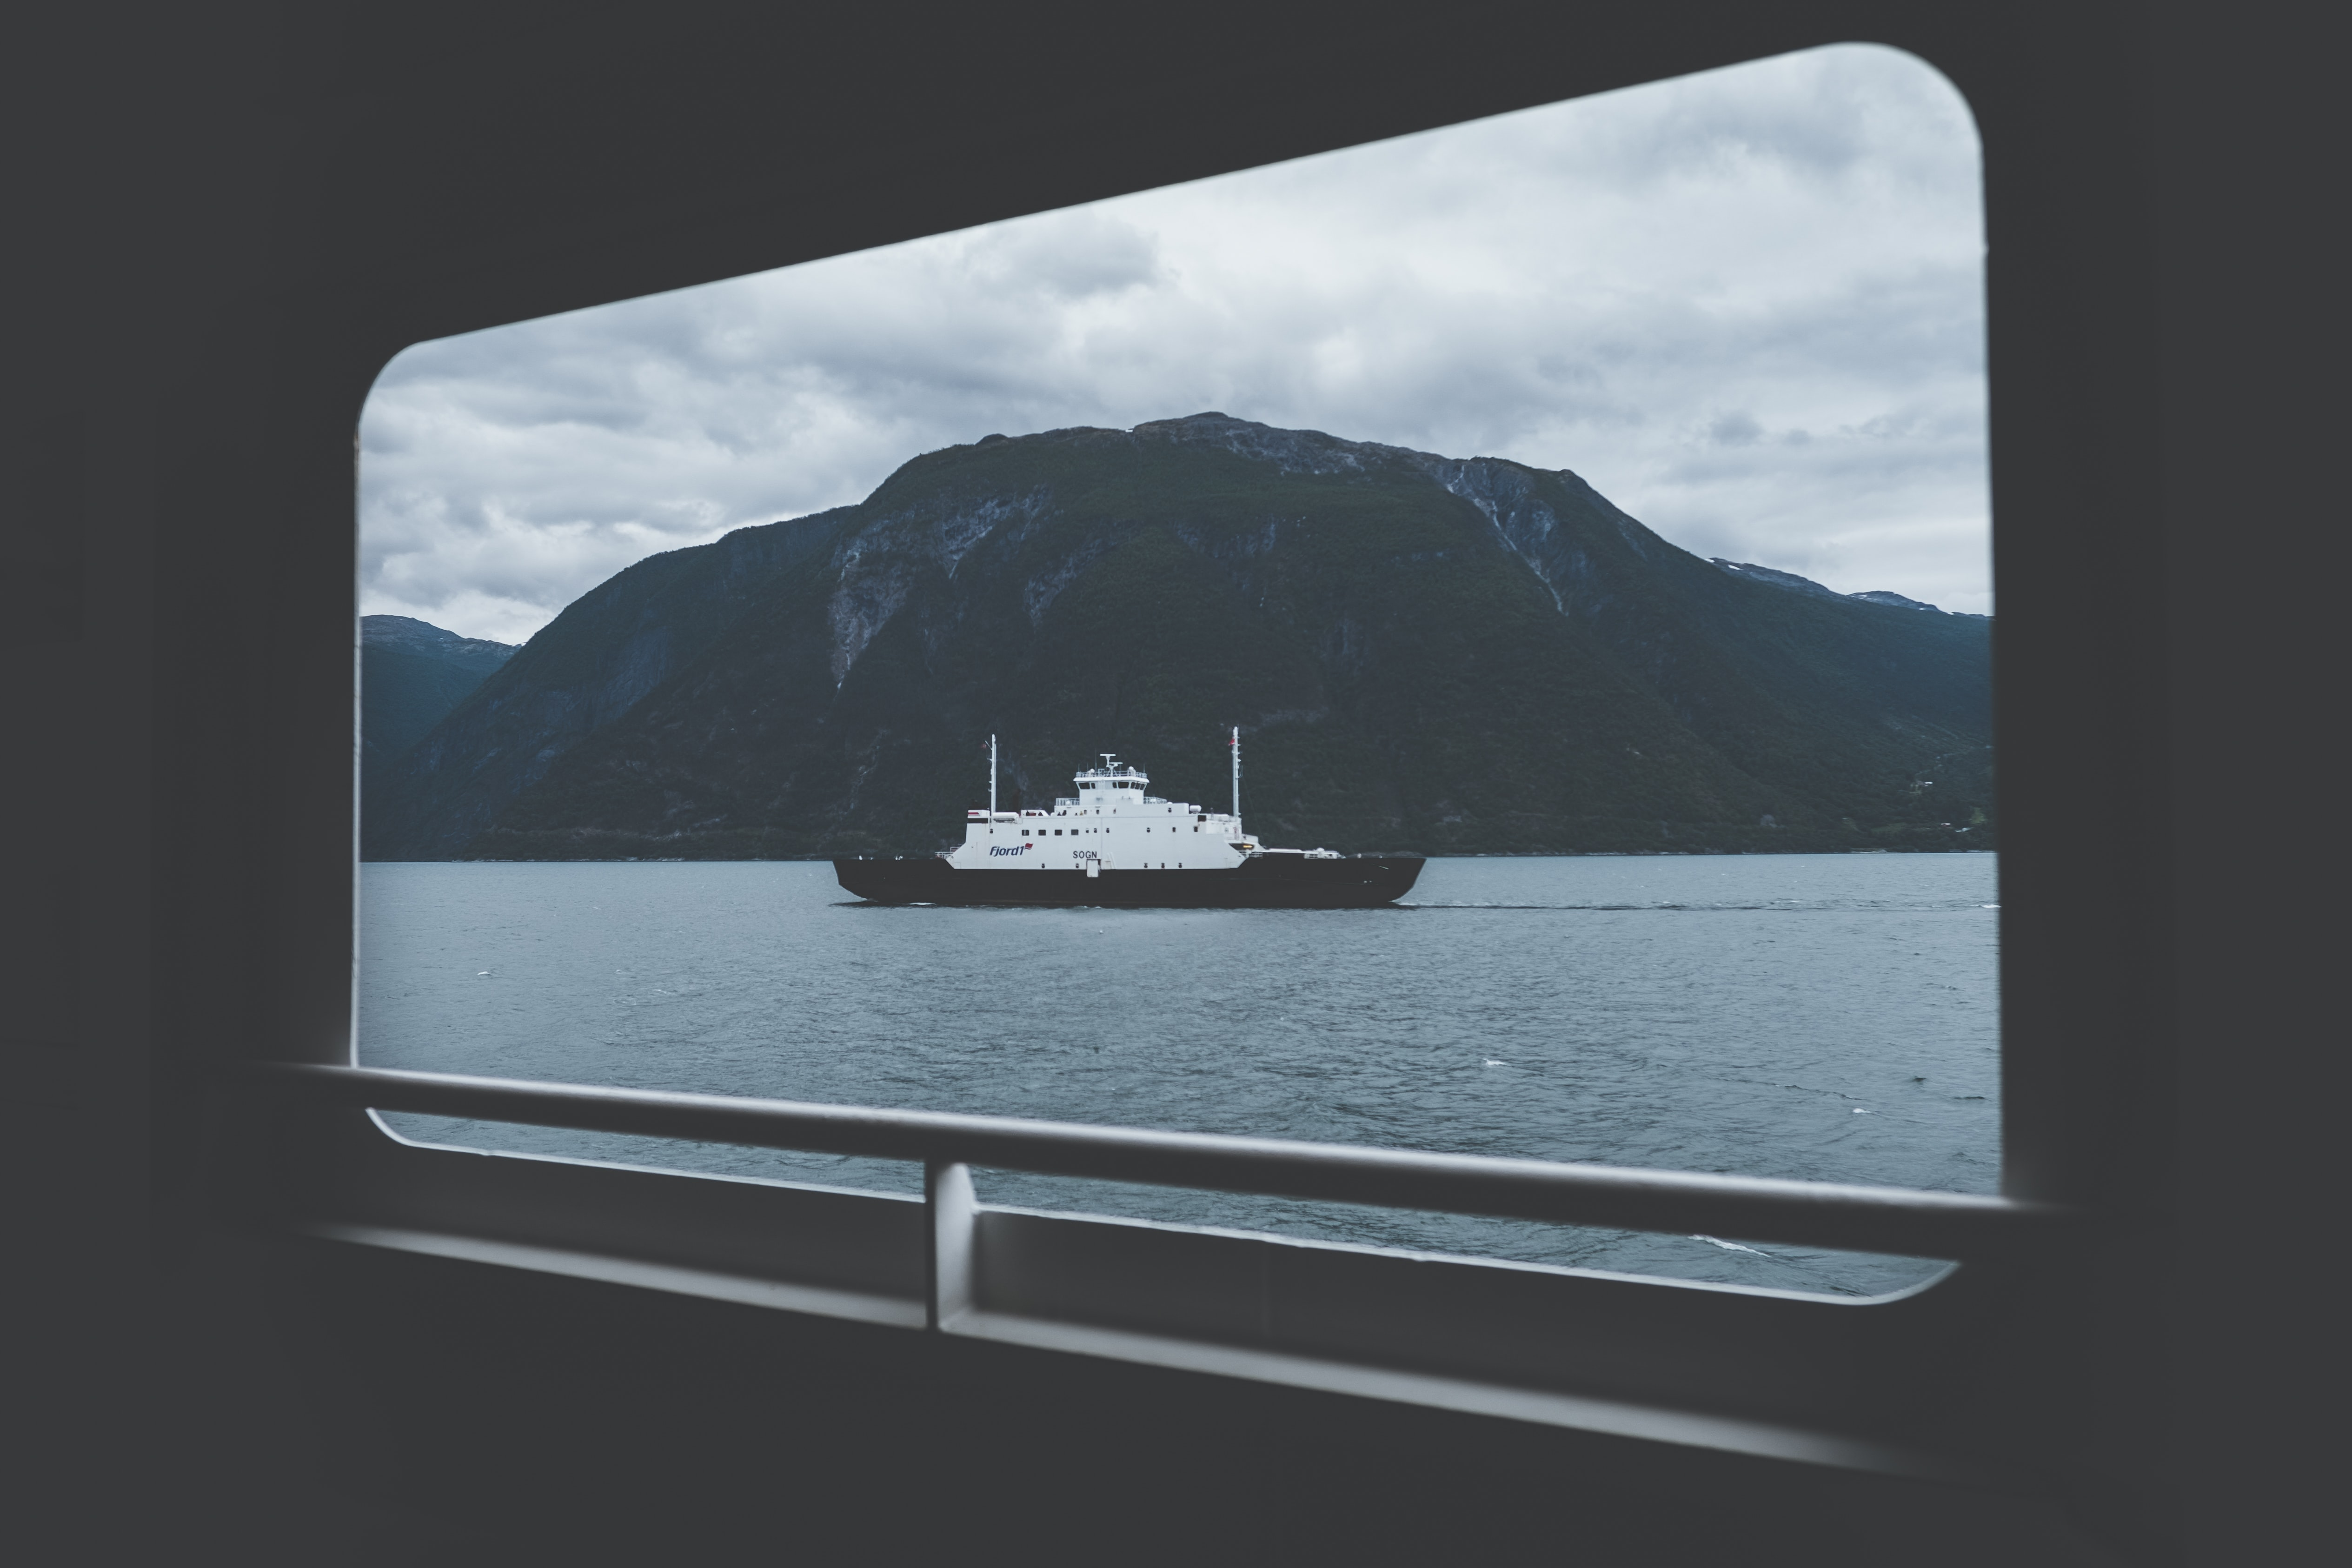 ship on body of water under gray sky during daytime